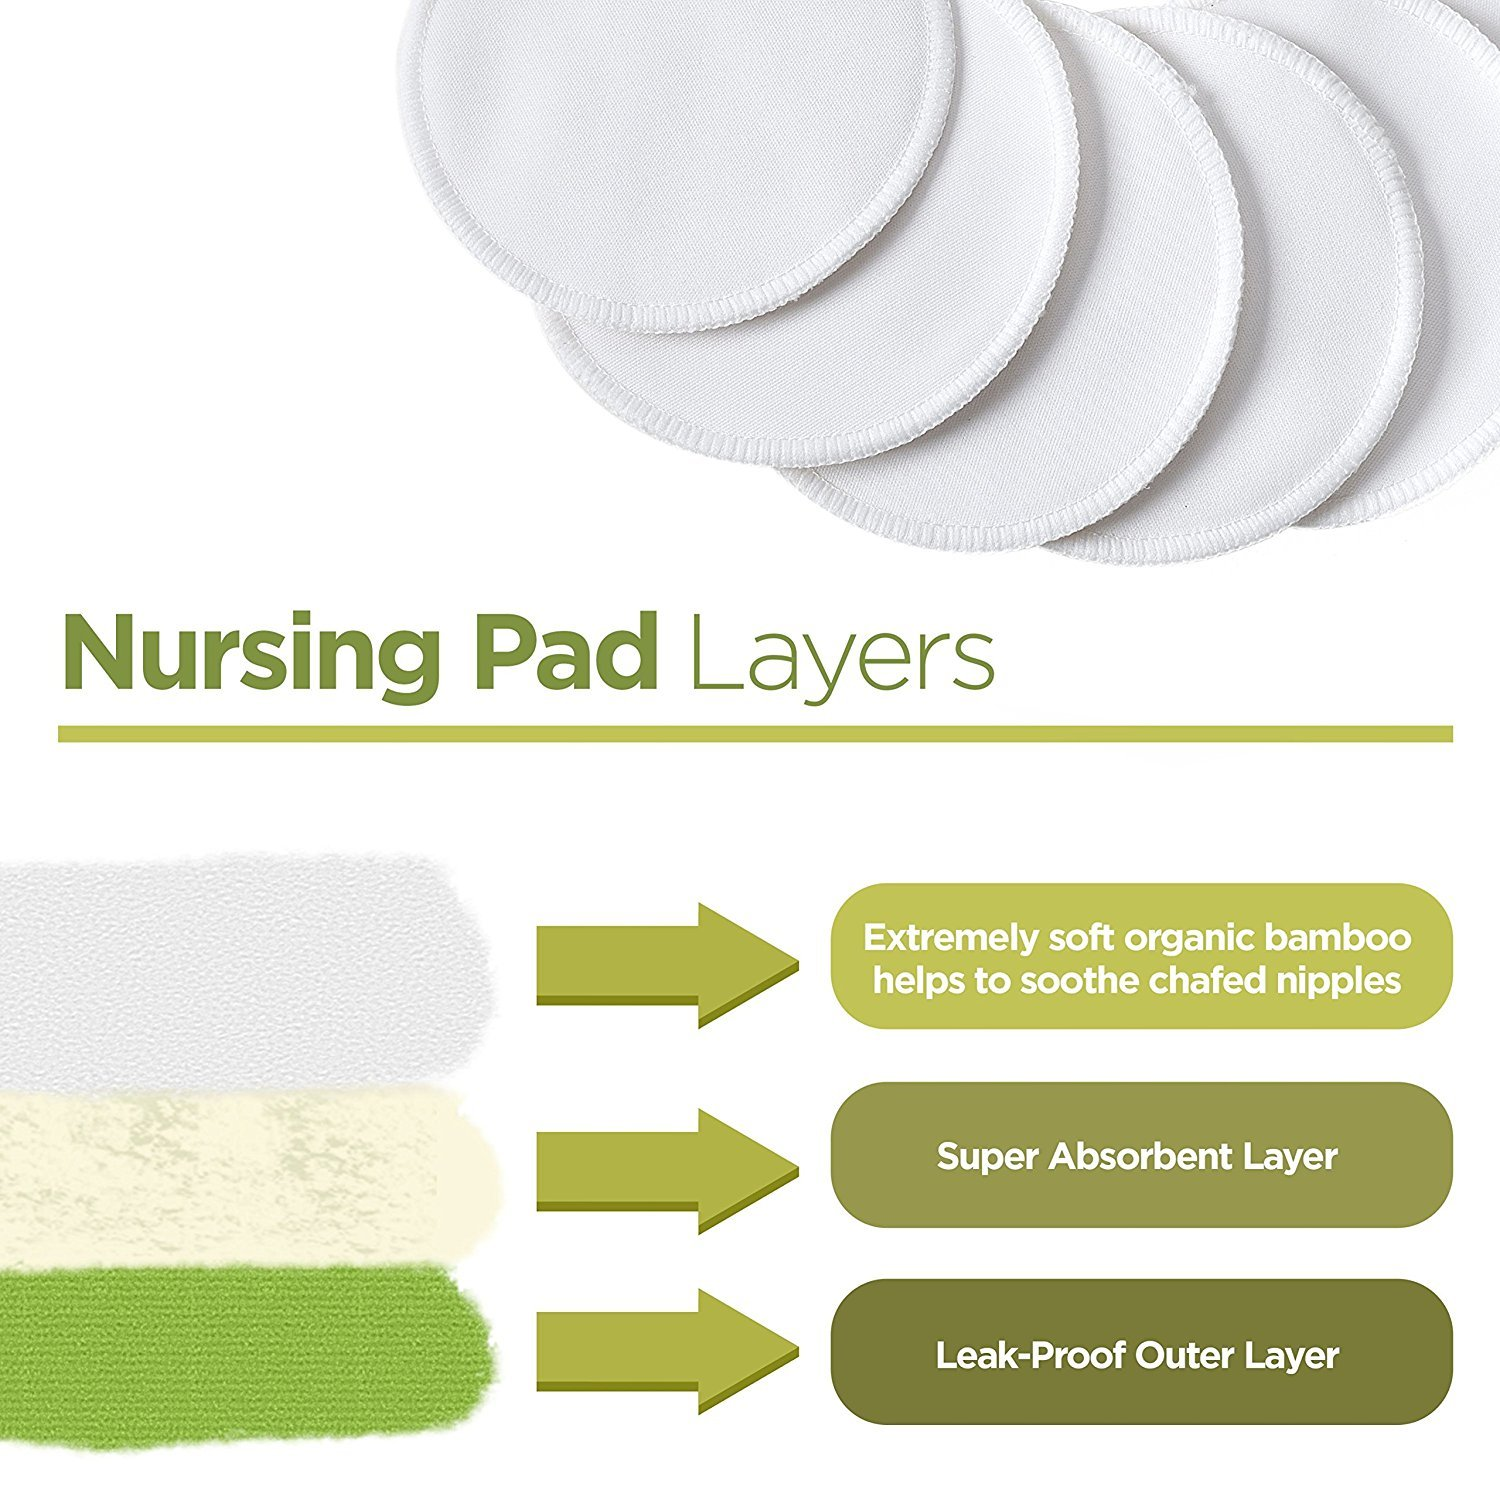 Waterproof absorbent pads 4 pairs Leakproof Kiddo Care Washable Organic Bamboo Nursing Pads -8 PACK baby shower gift! Ultra soft White- Reusable Breast Pads,Bra pads